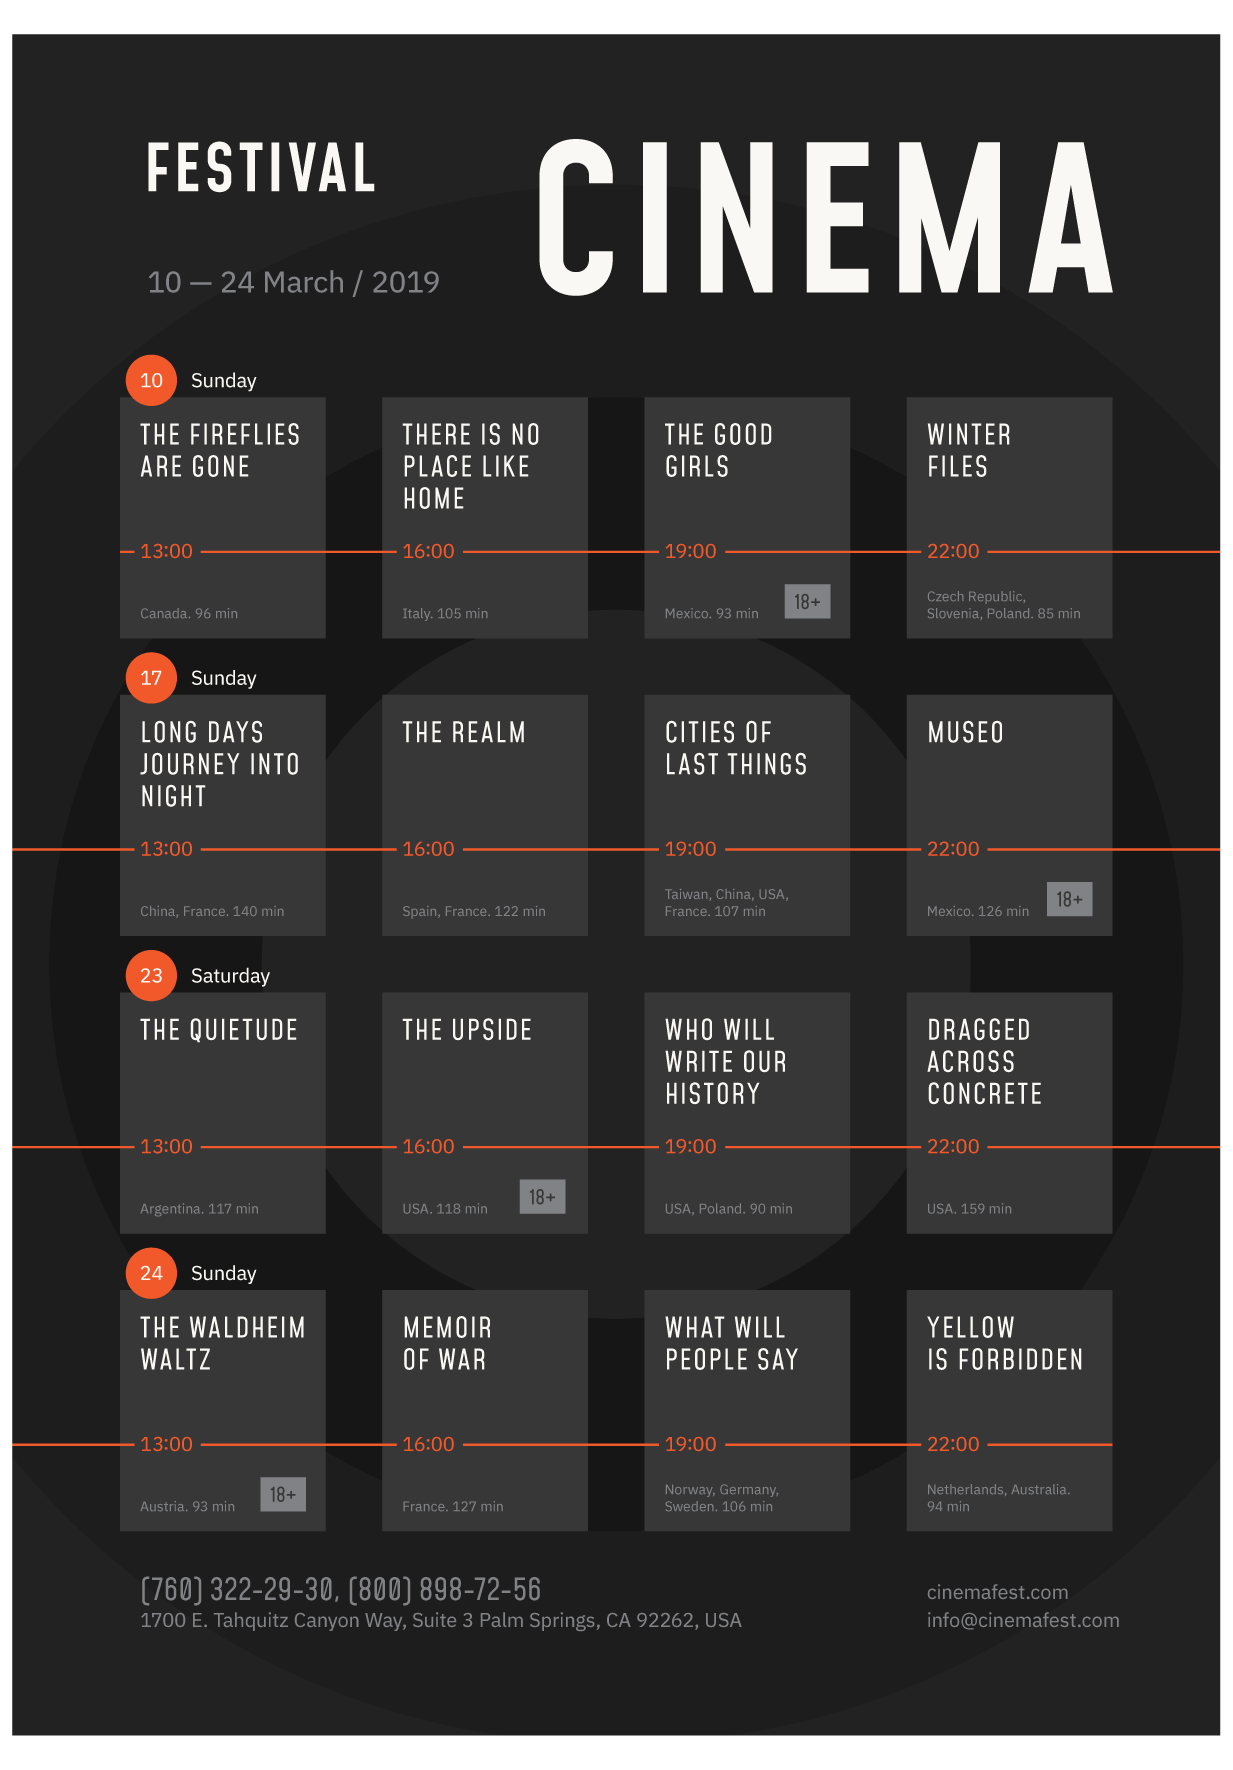 Film Festival Poster Template Event Schedule Template Film Festival Day Schedule Templa Event Schedule Design Graphic Design Schedule Schedule Design Layout